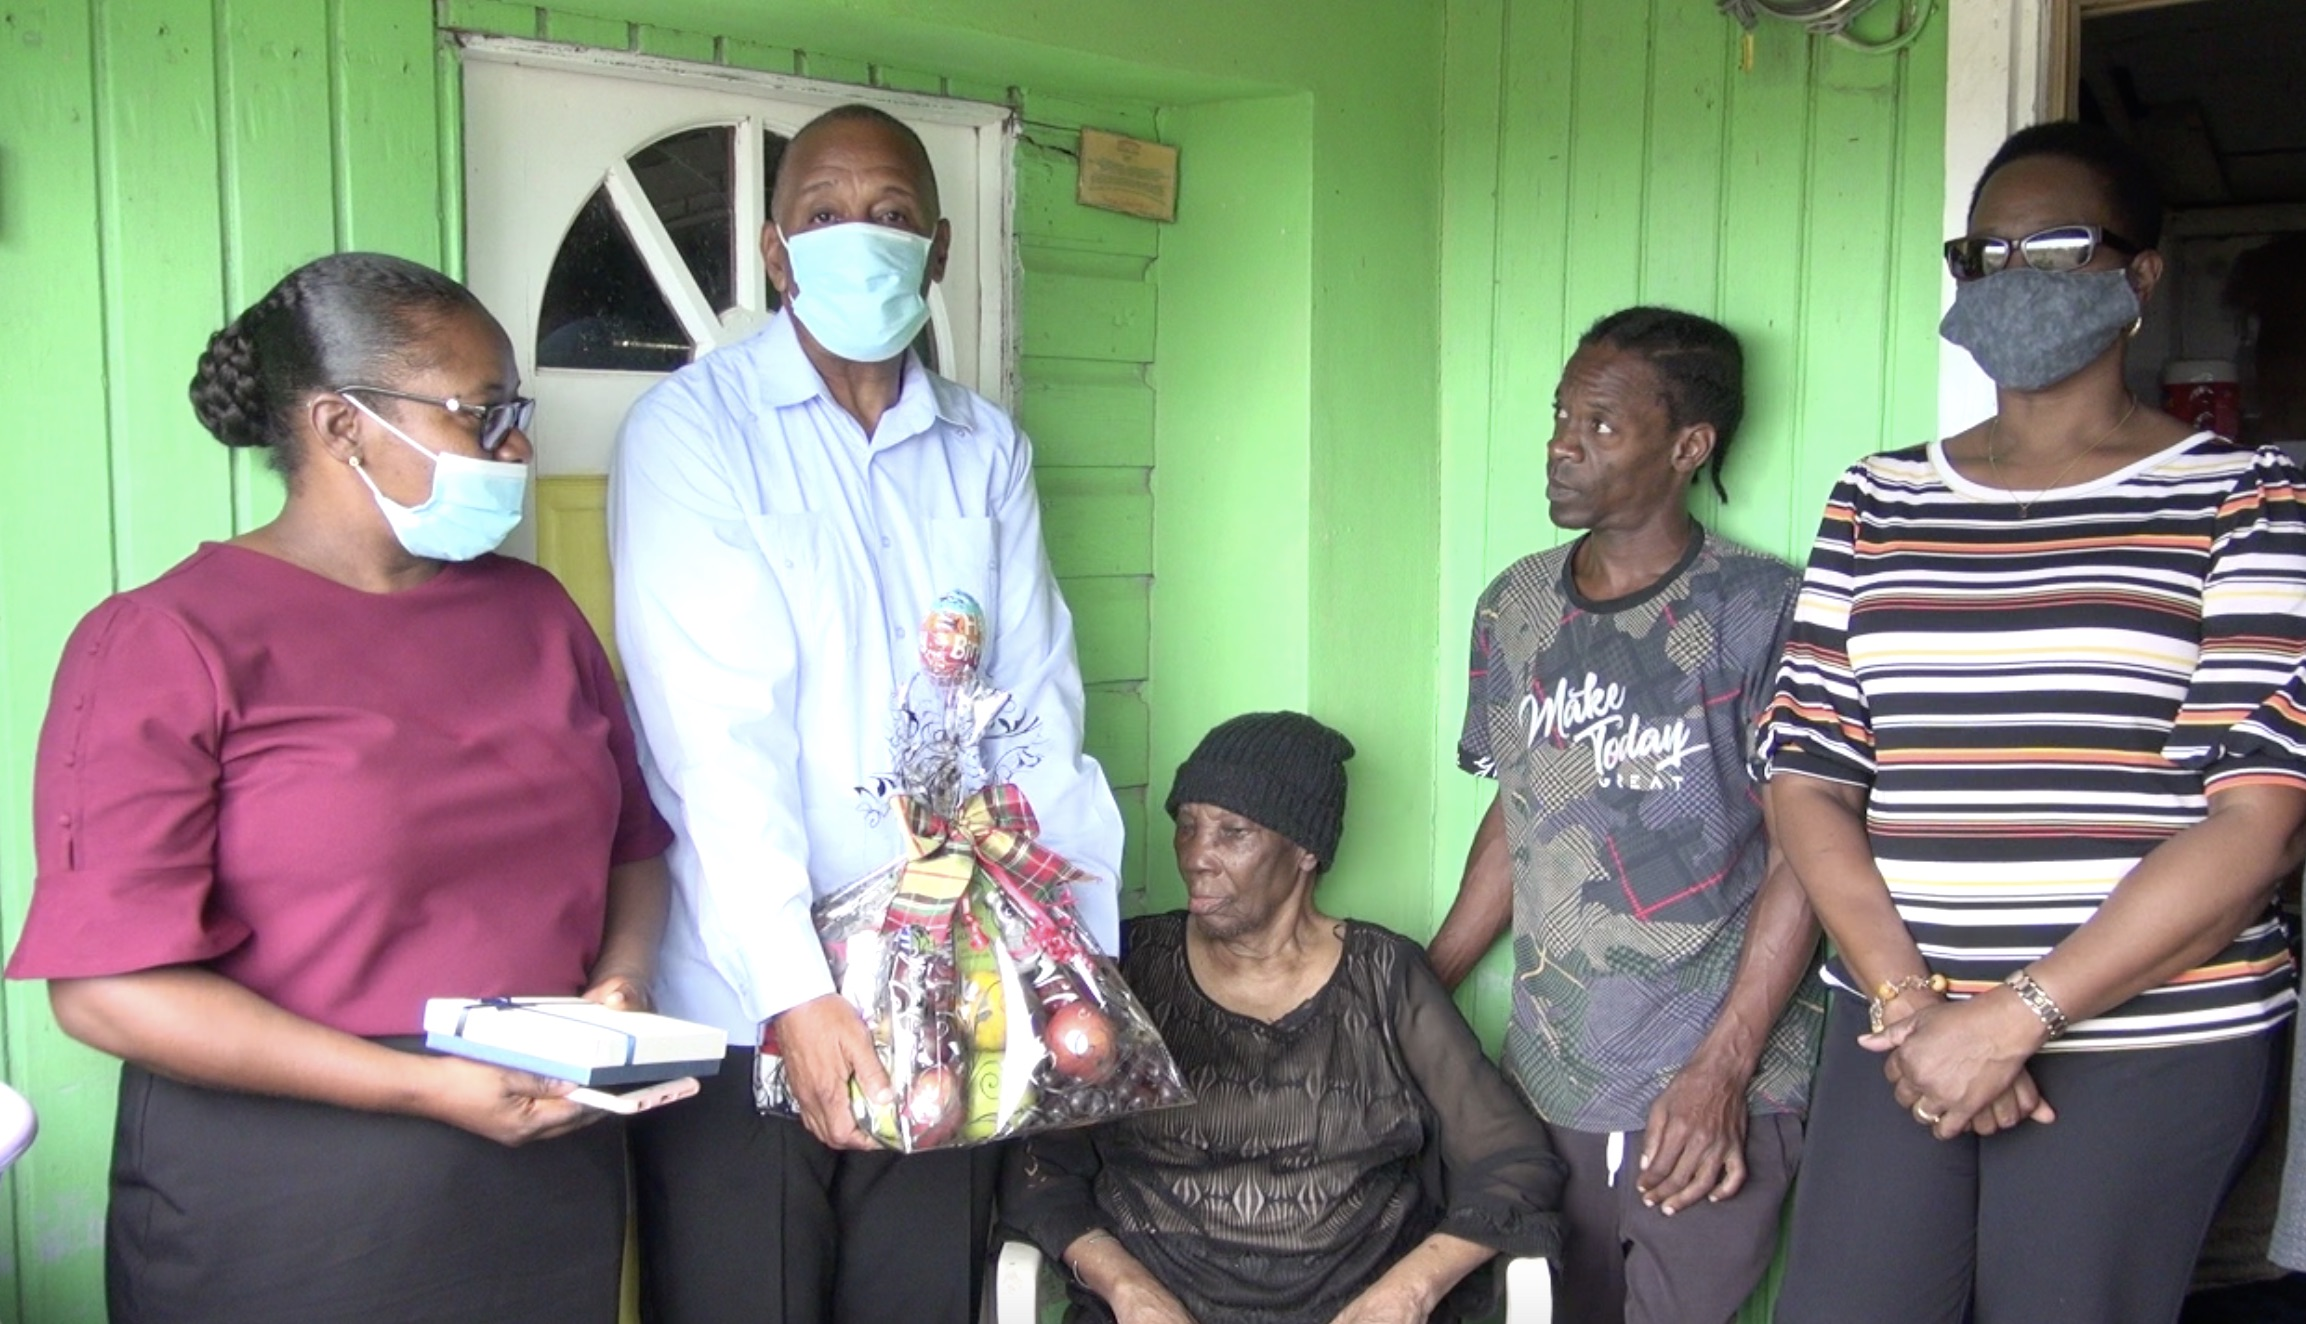 """One hundred and one-year-old Eliza """"Liza"""" Jeffers (sitting) with her nephew Randy at her side while Hon. Eric Evelyn, Minister responsible for seniors on Nevis, presents her with a fruit basket, a token of appreciation on behalf of the ministry and the Department of Social Services' Senior Citizens Division in celebration of National Centenarians Day on May 31, 2021"""